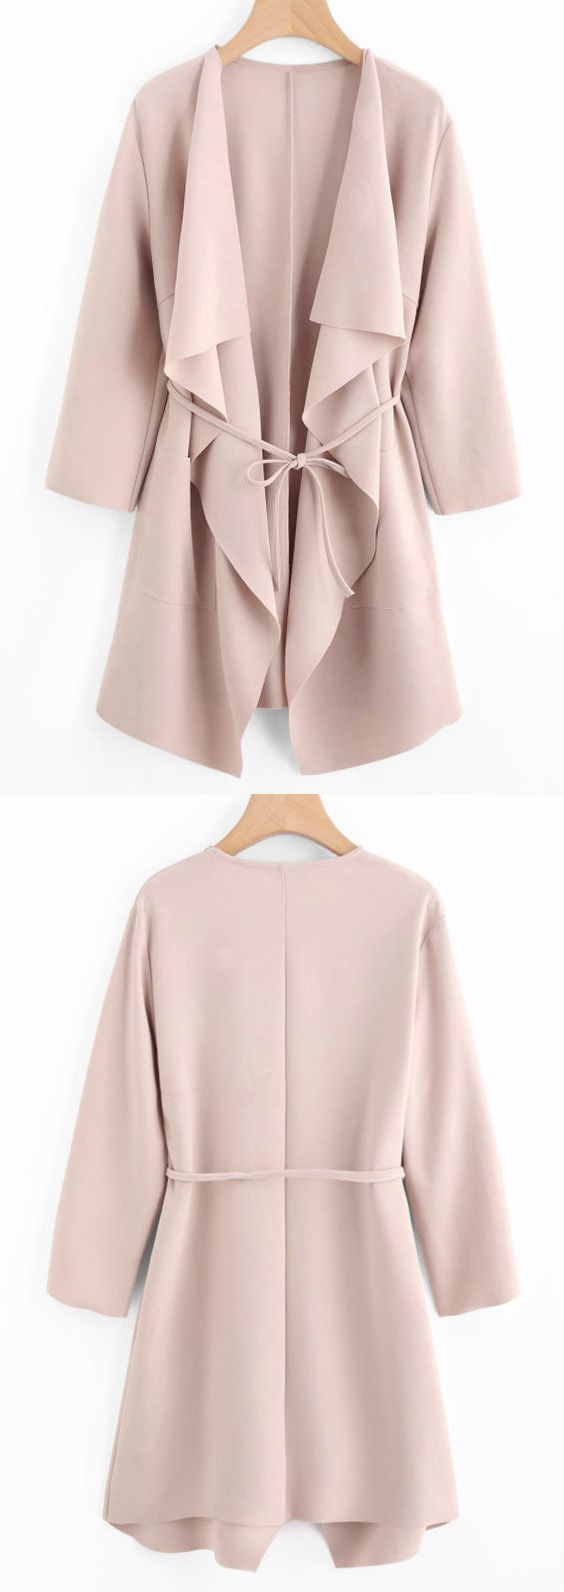 Up to 68% OFF! Front Pockets Draped Coat. #Zaful #coats Zaful,zaful outfits, zaful sweaters, fashion, style, tops, outfits, blouses, sweatshirts, hoodies, hoodies outfit , jackets, coats, cardigan, sweater, cute sweatshirts, floral hoodie, cropped hoodies, fall, winter, winter outfits, winter fashion, fall fashion, fall outfits, christmas, ugly, ugly christmas, thanksgiving, gift, christmas hoodies, black friday, cyber monday @zaful Extra 10% OFF Code:ZF2017